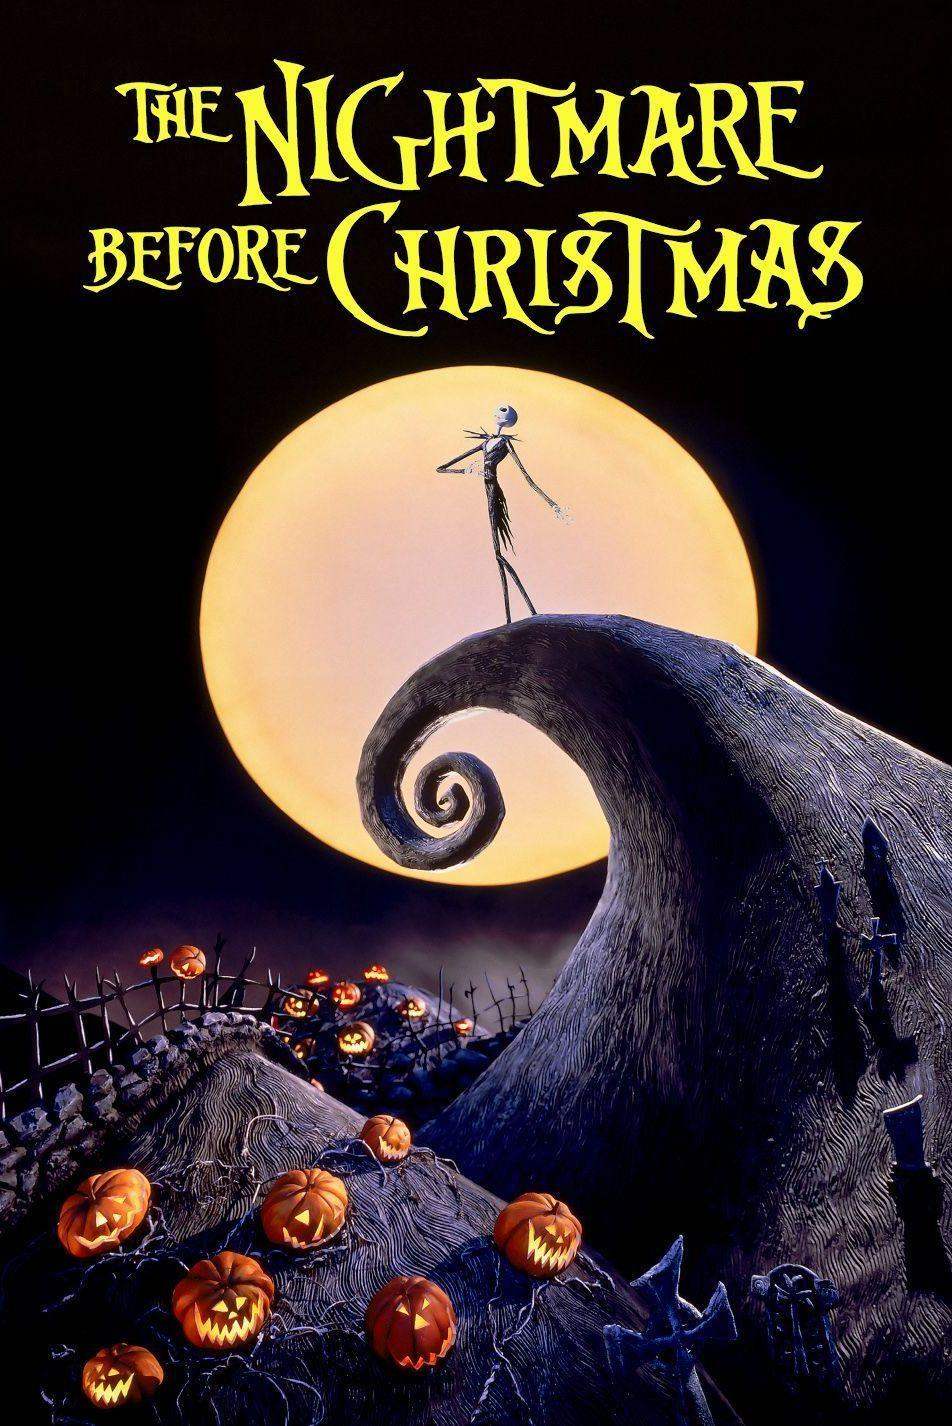 """<p>While there continues to be <a href=""""https://editorial.rottentomatoes.com/article/is-the-nightmare-before-christmas-a-christmas-movie-or-a-halloween-movie/"""" rel=""""nofollow noopener"""" target=""""_blank"""" data-ylk=""""slk:a robust debate"""" class=""""link rapid-noclick-resp"""">a robust debate</a> over whether this film is technically a Christmas or Halloween movie, we say it's great to watch any time of year. Pumpkin King Jack Skellington is bored of the same old scary features of Halloween Town, so he decides to explore the enchanting world of Christmas Town. And when he does, he is amazed at what he learns.</p><p><a class=""""link rapid-noclick-resp"""" href=""""https://go.redirectingat.com?id=74968X1596630&url=https%3A%2F%2Fwww.disneyplus.com%2Fmovies%2Ftim-burtons-the-nightmare-before-christmas%2F5GjwOj5Rkpz2&sref=https%3A%2F%2Fwww.goodhousekeeping.com%2Flife%2Fentertainment%2Fg33651563%2Fdisney-halloween-movies%2F"""" rel=""""nofollow noopener"""" target=""""_blank"""" data-ylk=""""slk:WATCH NOW"""">WATCH NOW</a></p>"""